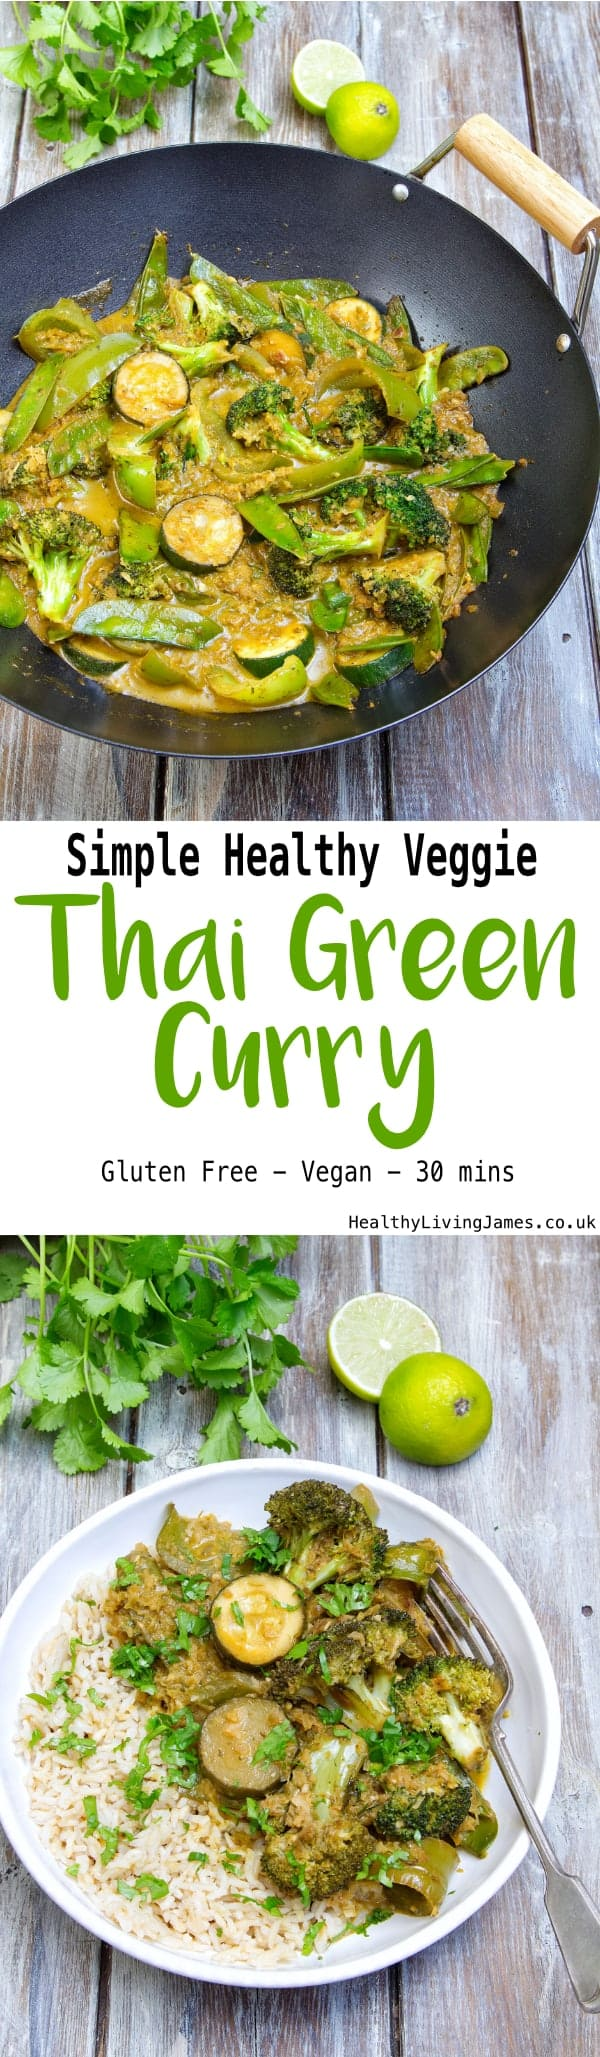 Veggie Thai Green Curry Pinterest